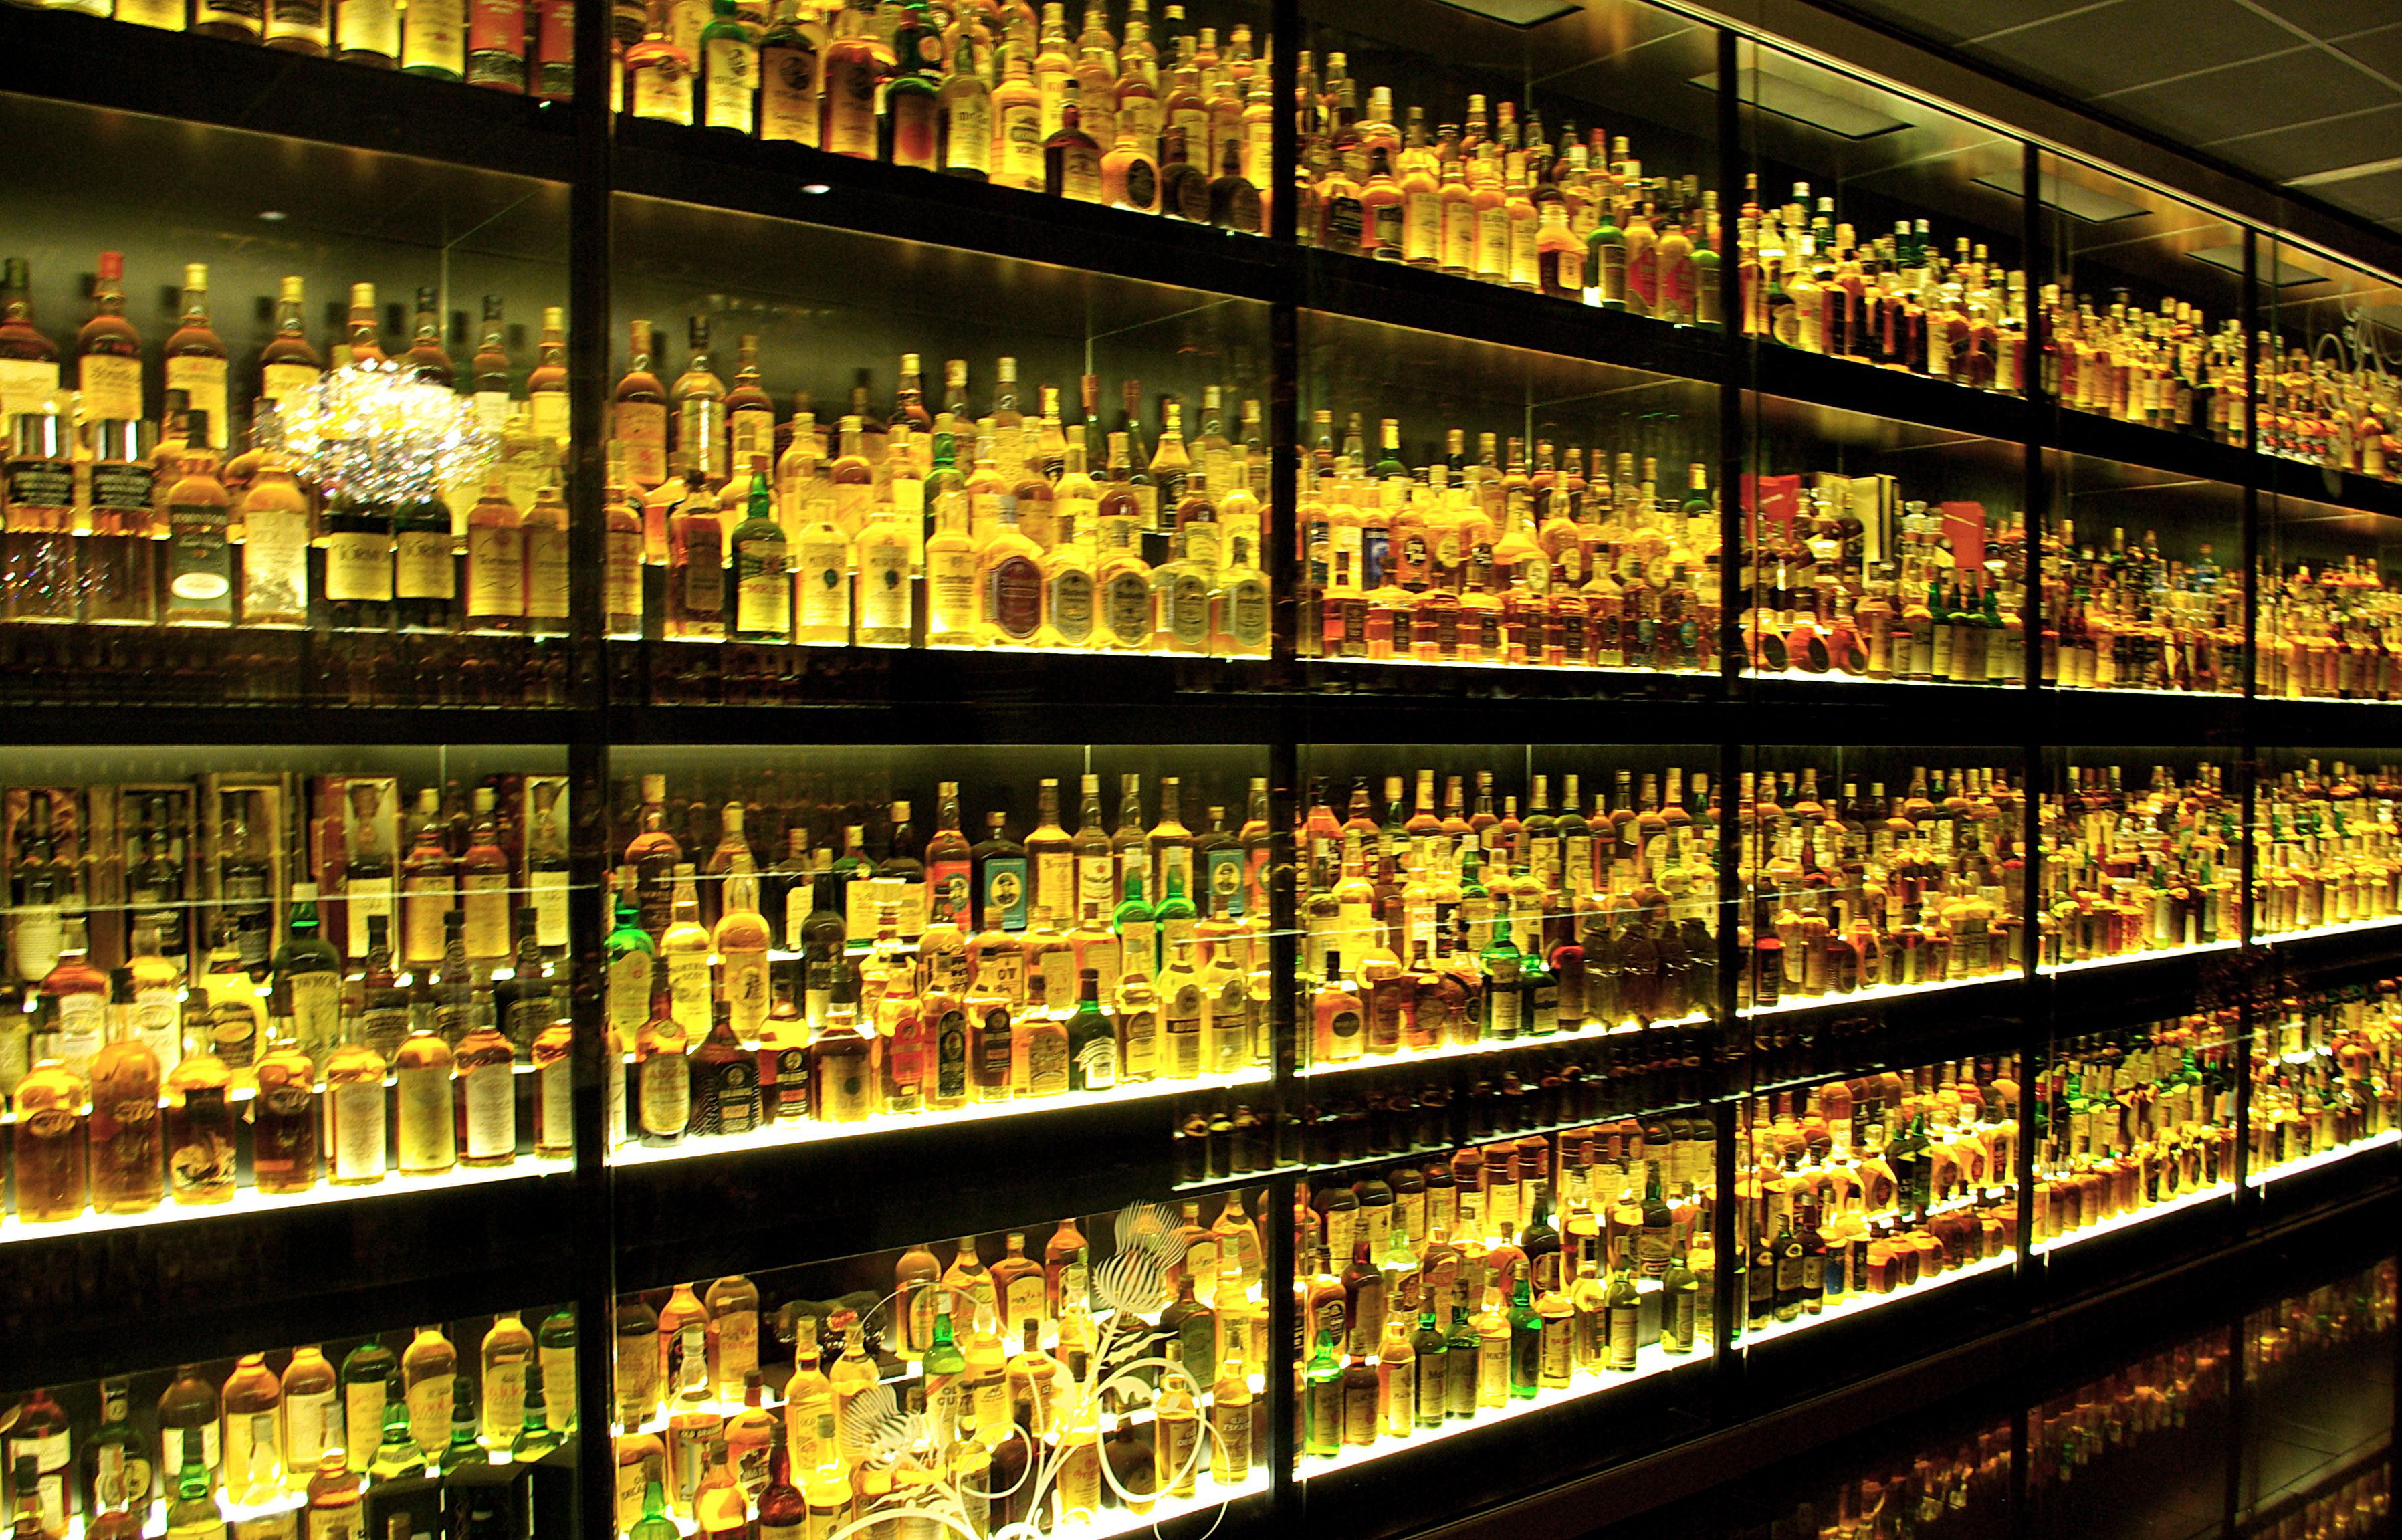 A wall of whisky at The Scotch Whisky Experience